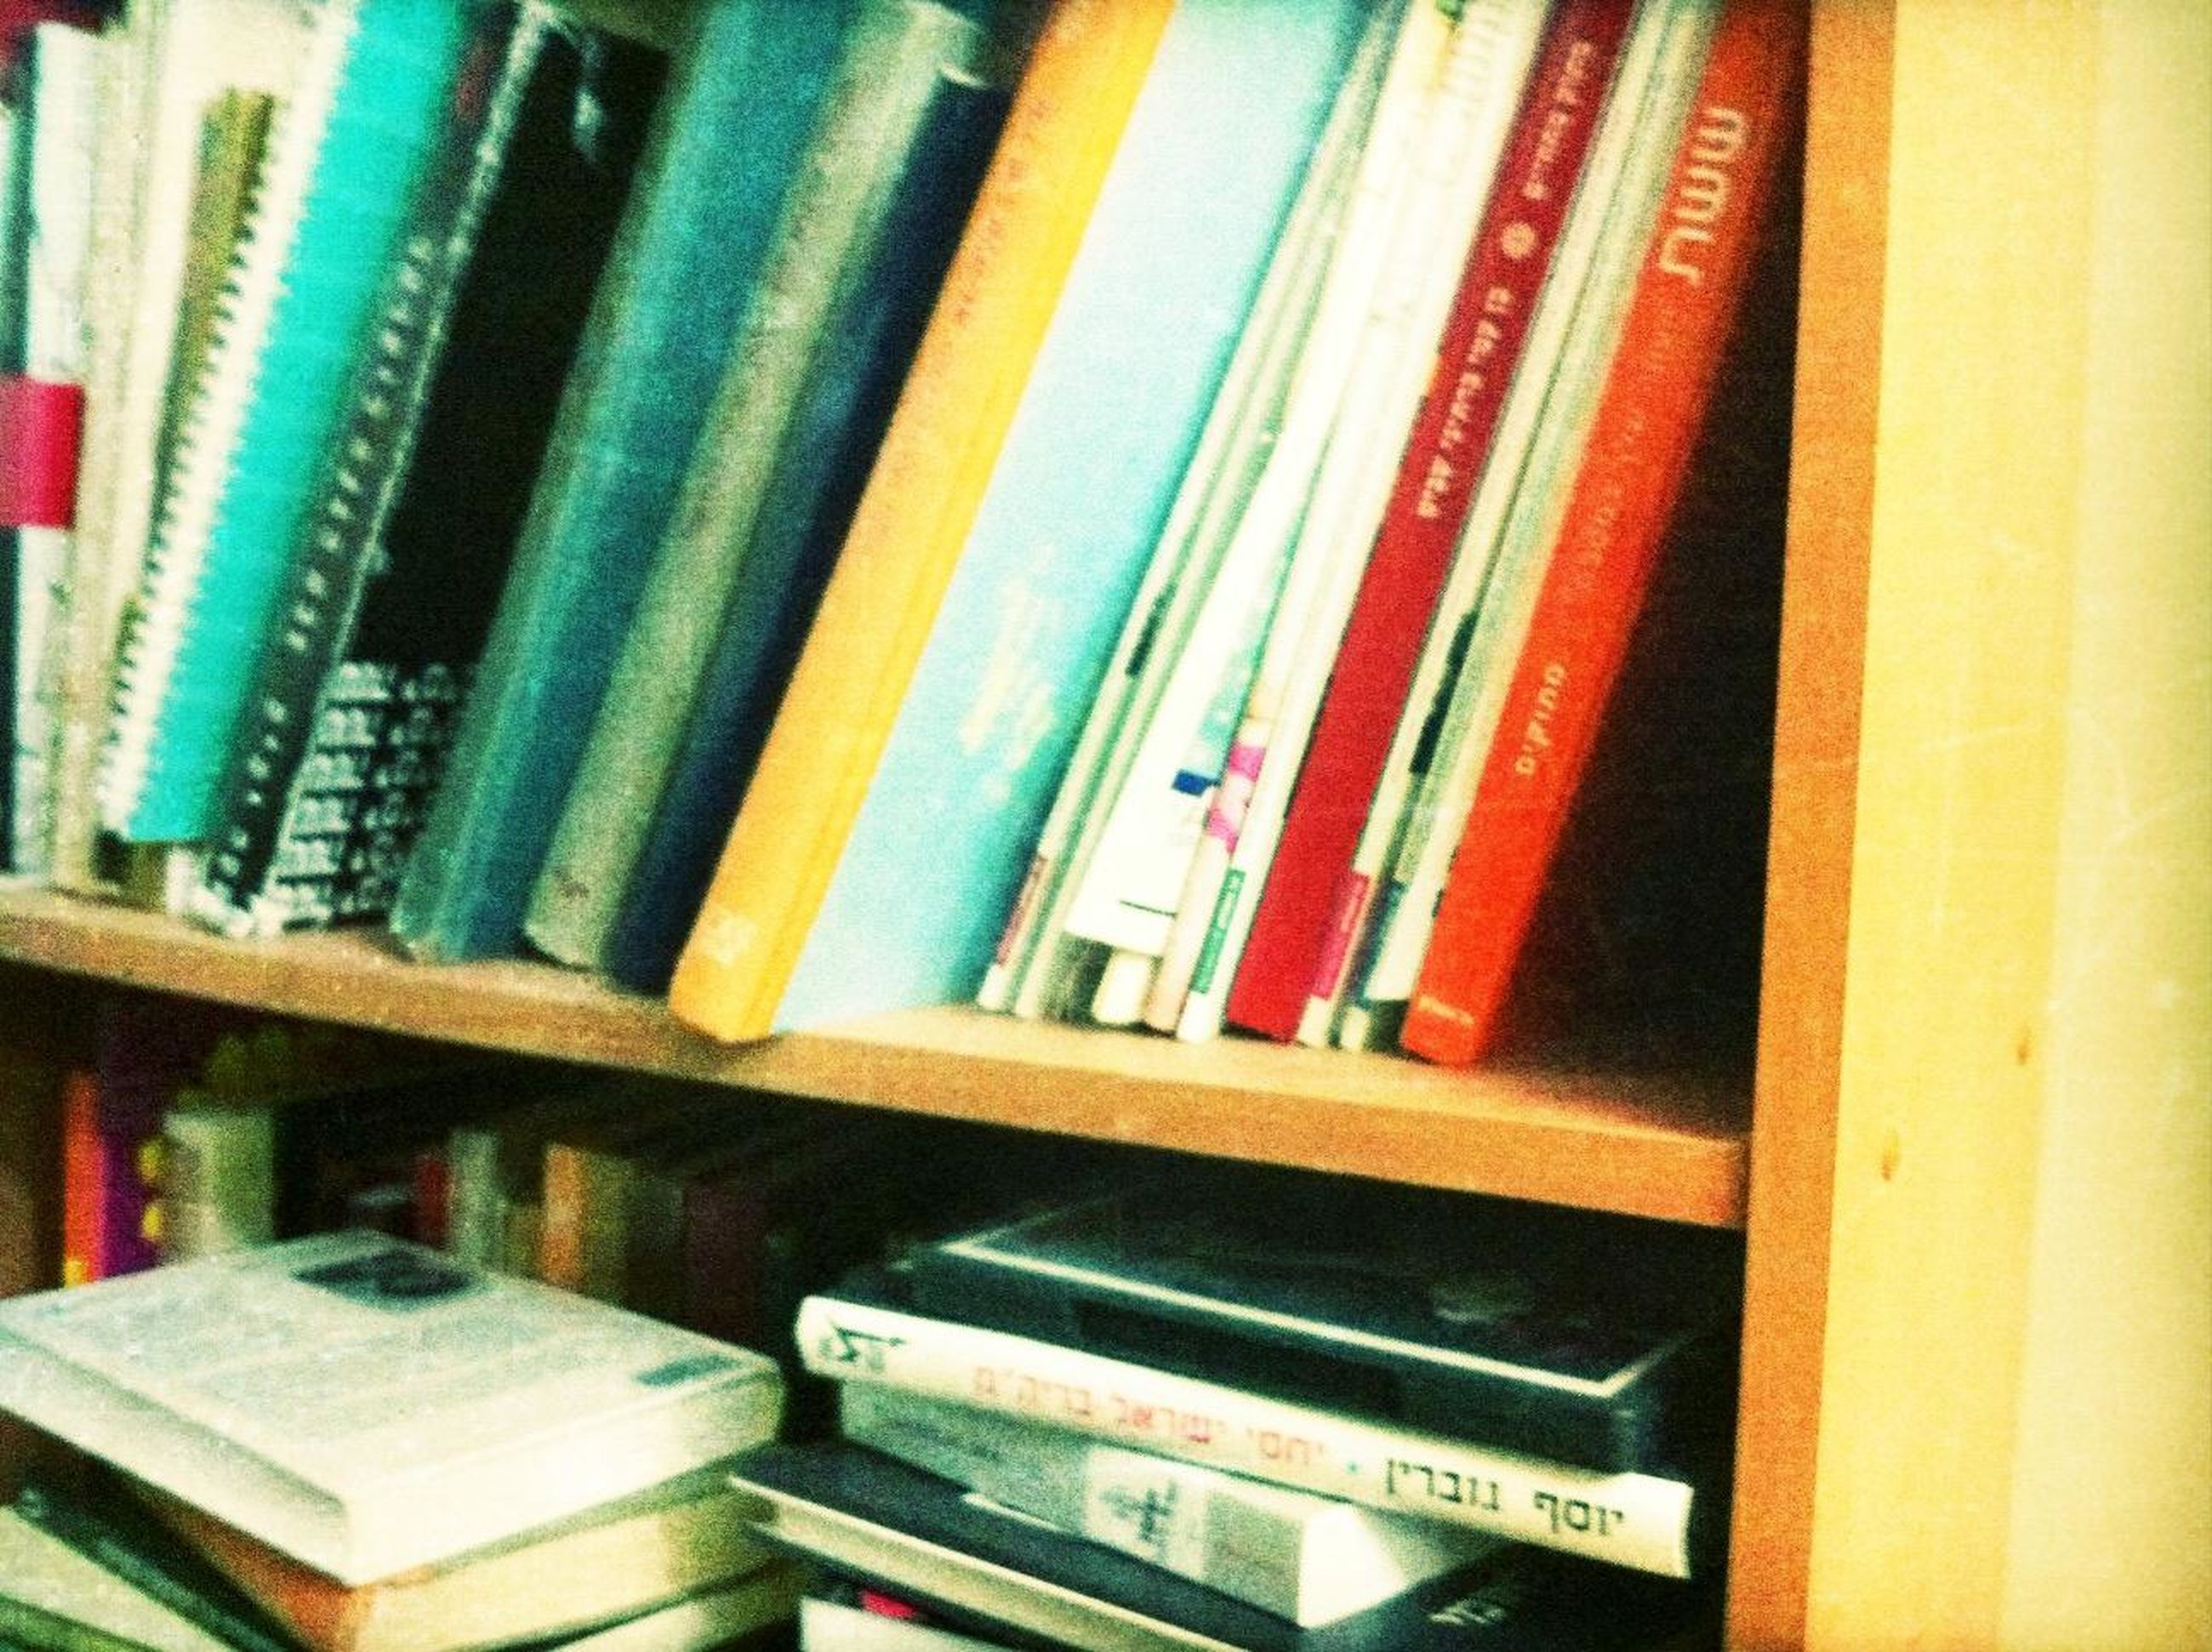 indoors, education, book, multi colored, in a row, close-up, wood - material, variation, no people, still life, stack, large group of objects, order, full frame, literature, shelf, arrangement, absence, choice, high angle view